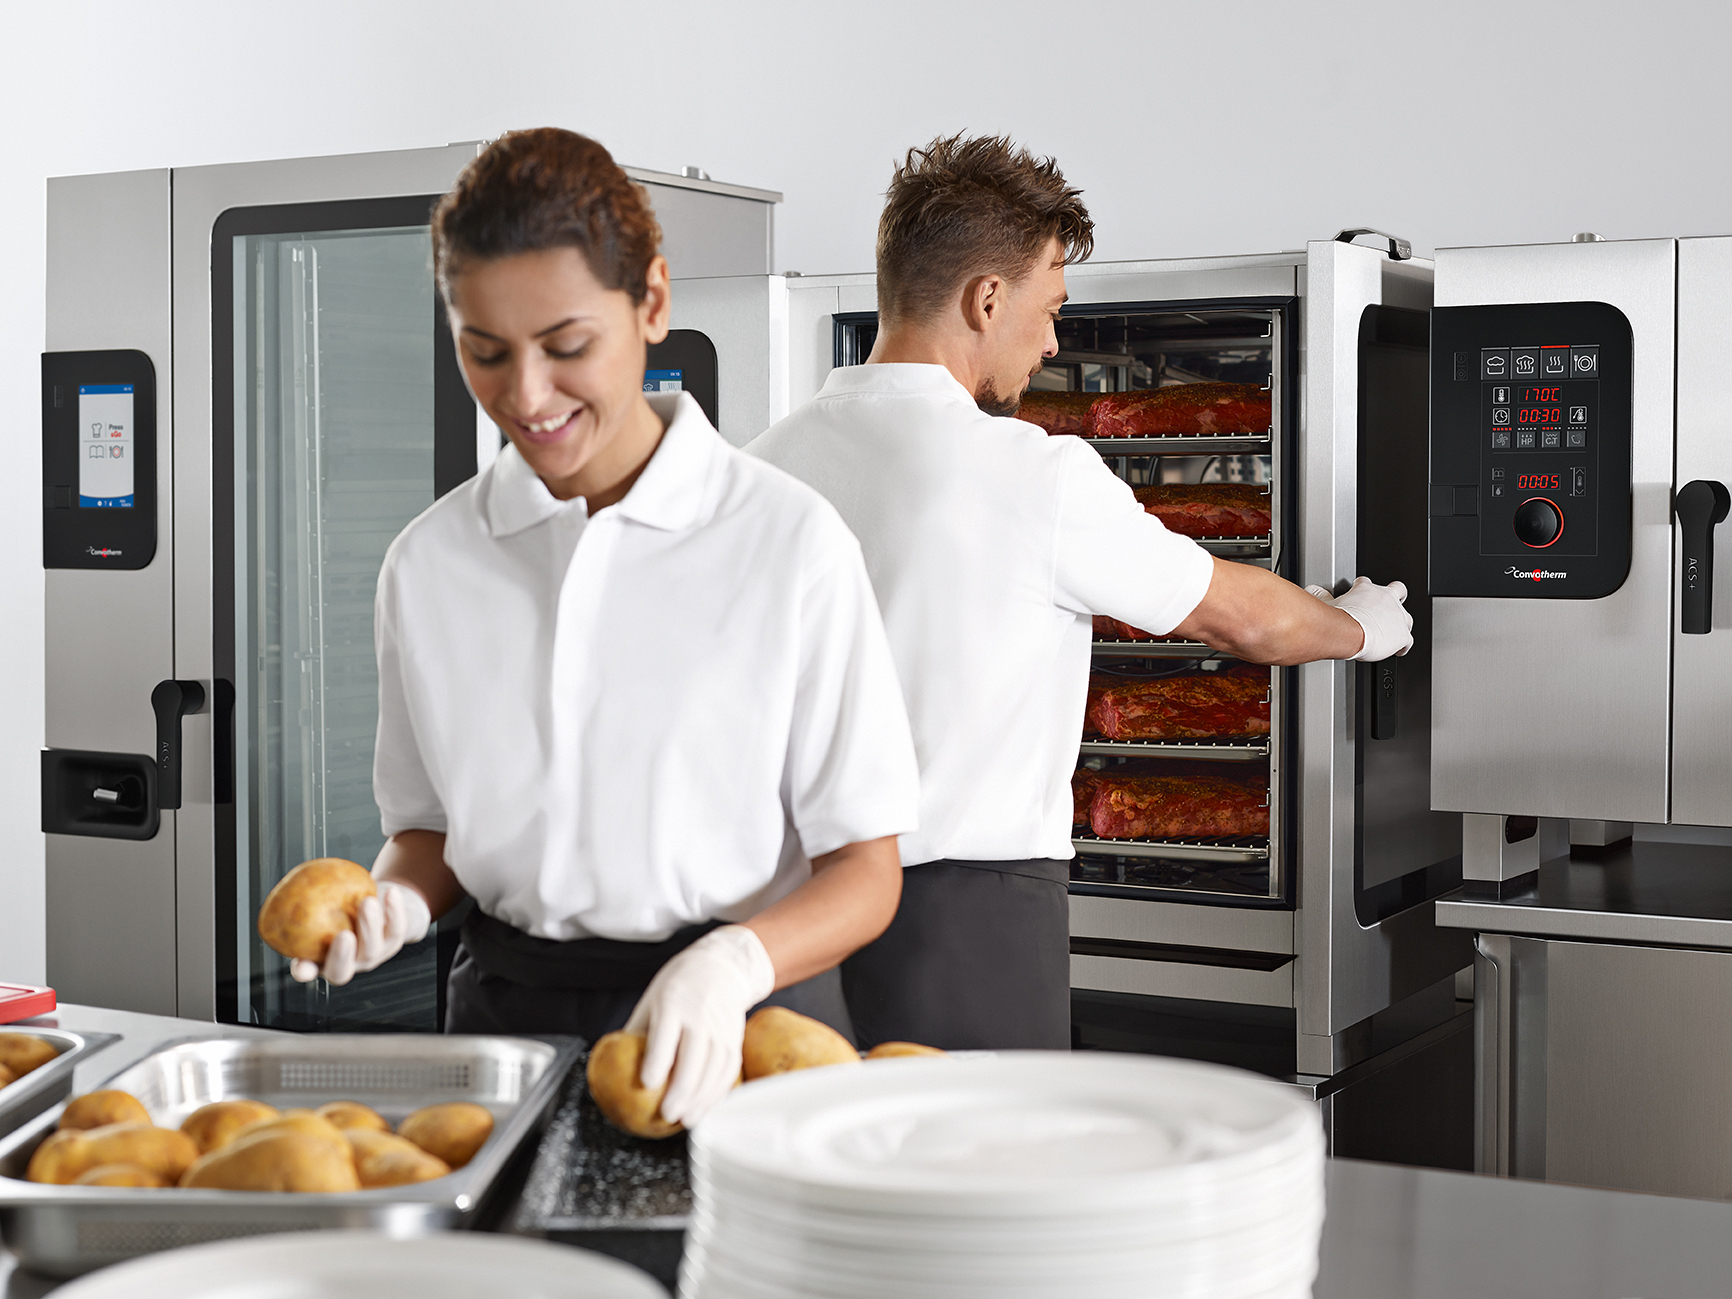 New Disappearing Door ensures easy access to your cooking and a safer work environment